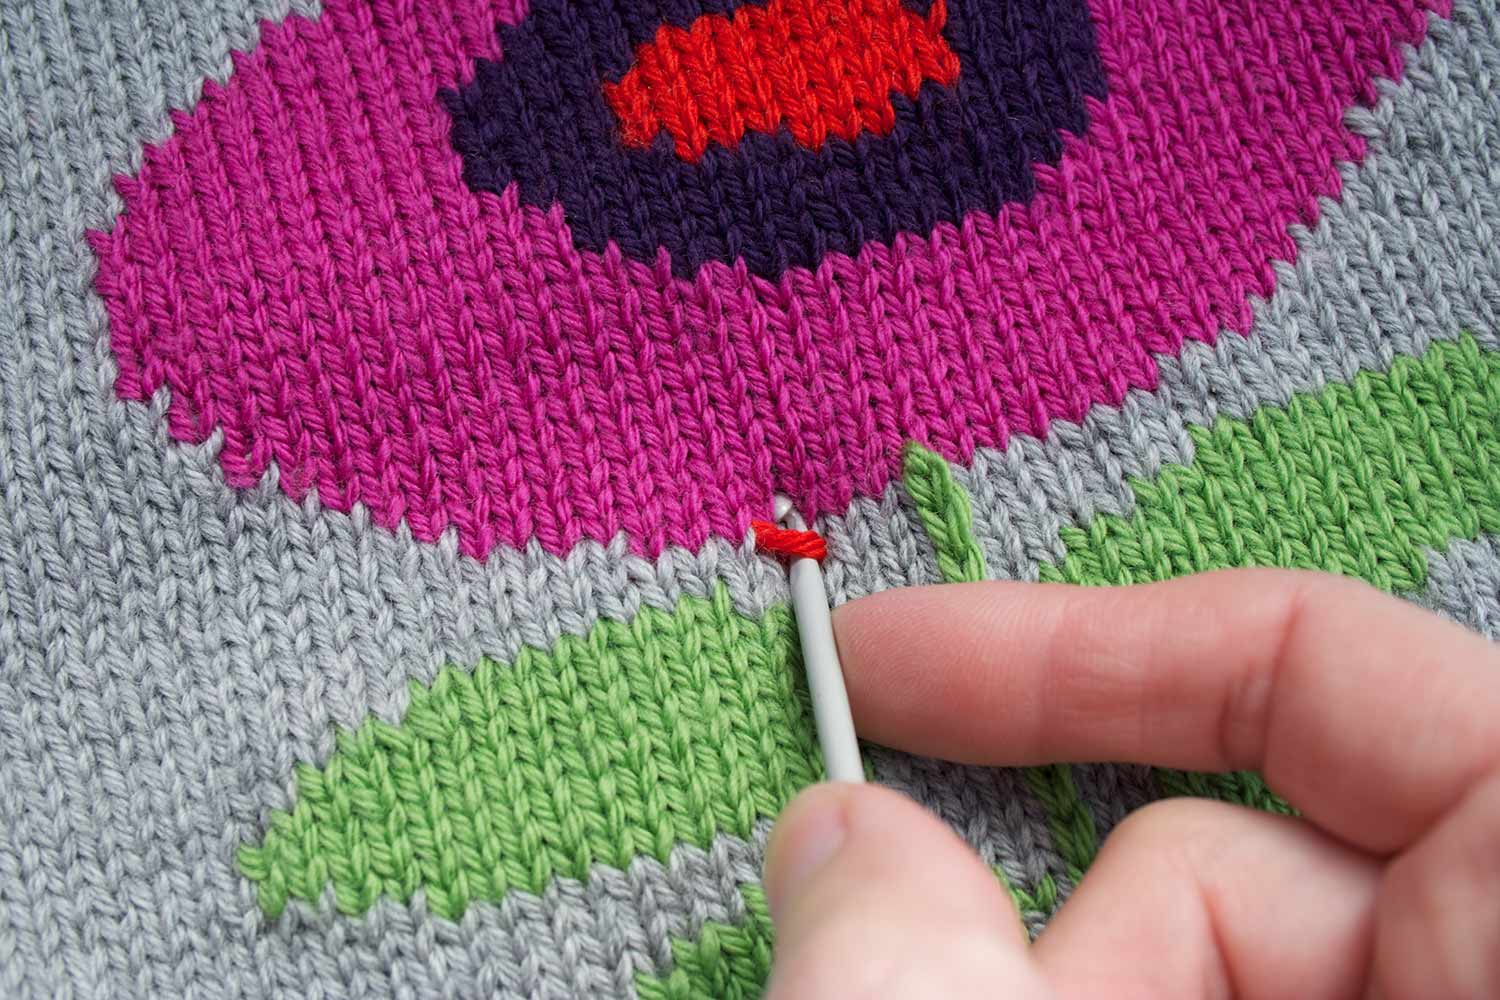 Crochet hook with a stitch on it being inserted through knitted fabric to the right of where the previous stitch was created.